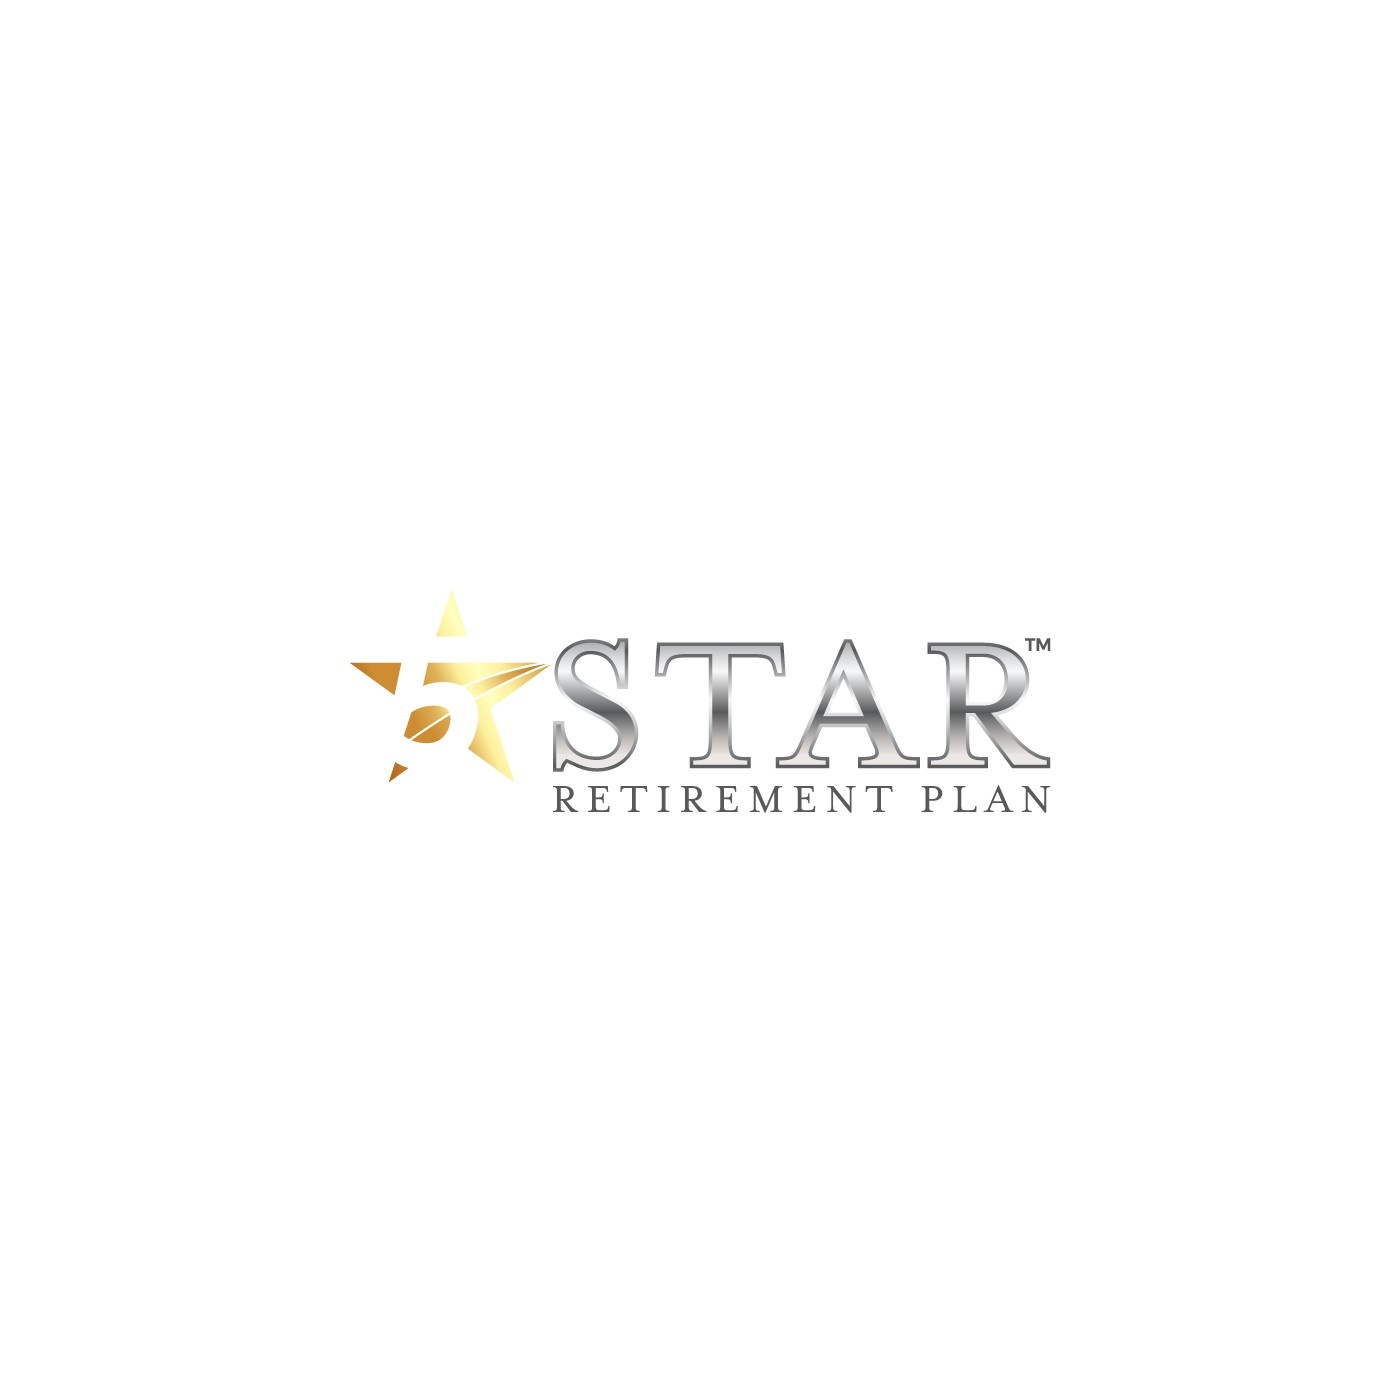 Create a power logo for 5 Star Retirement Plan